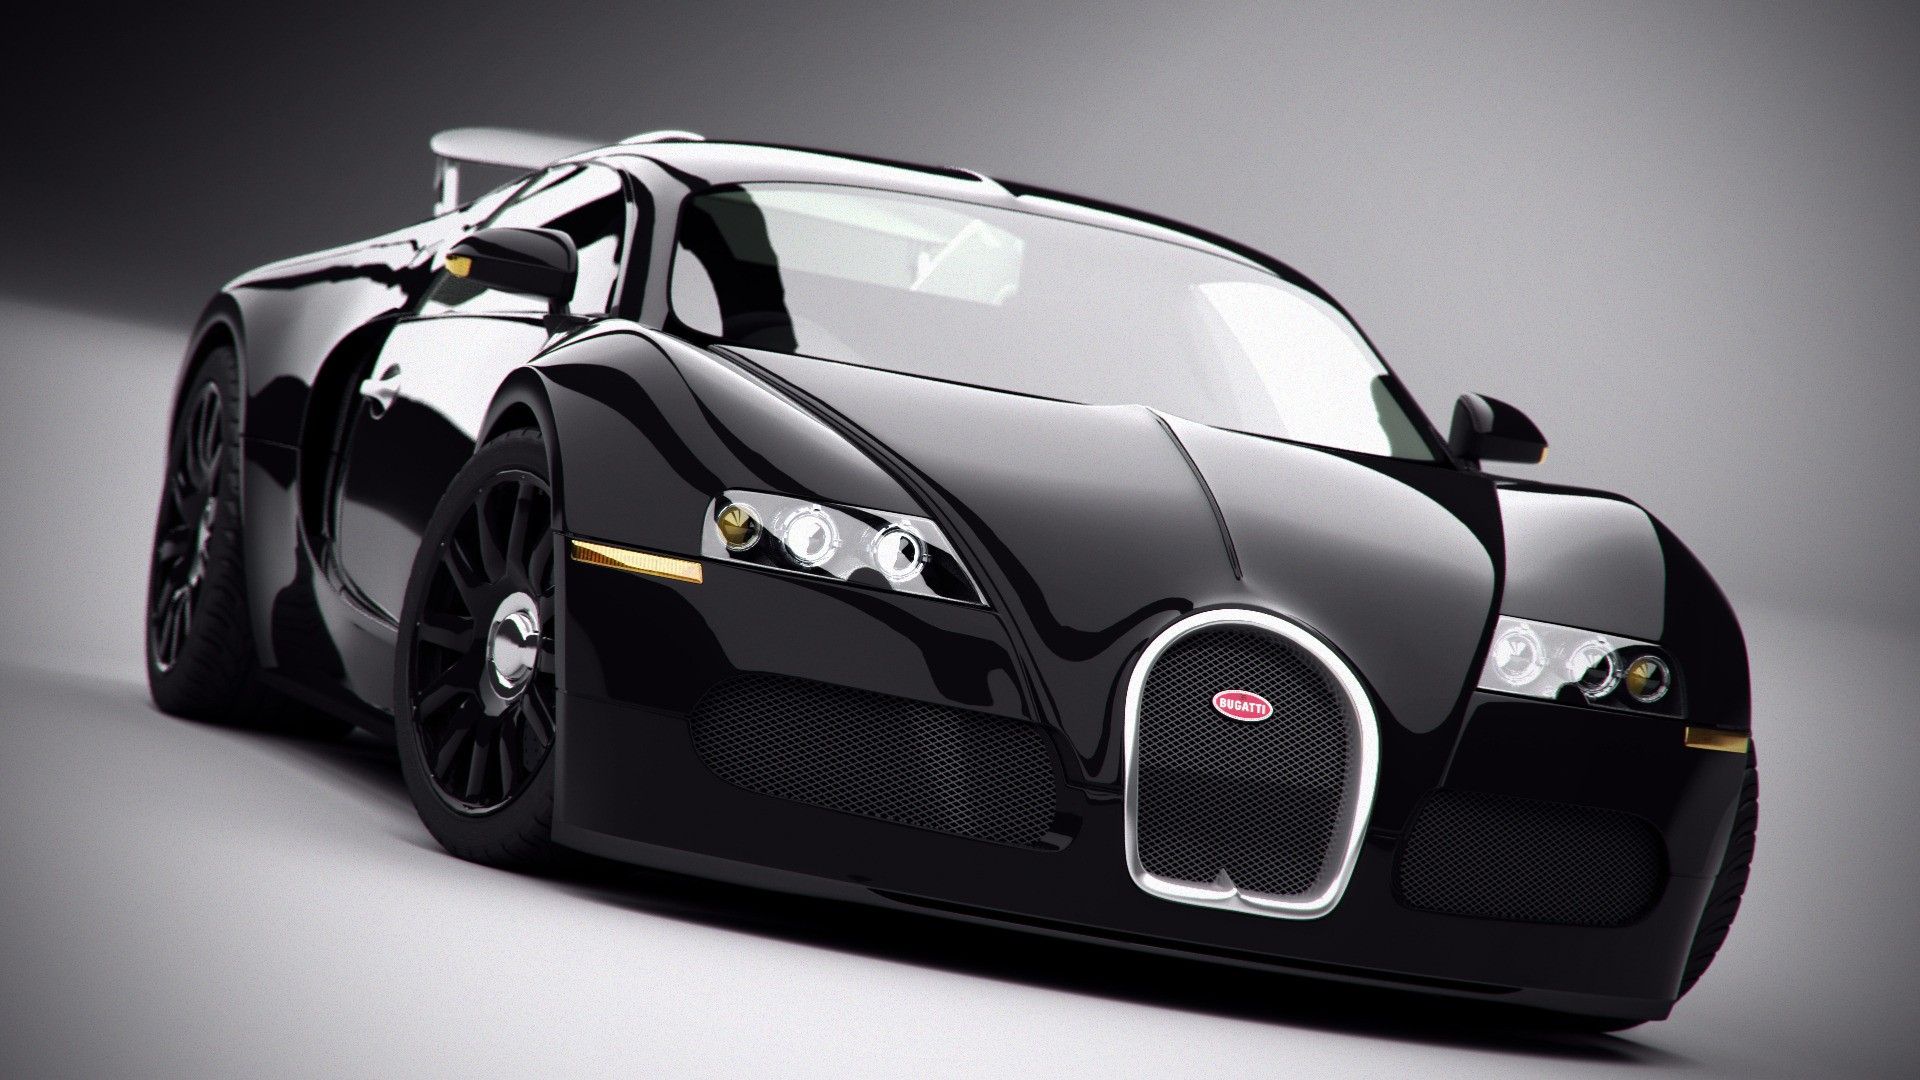 Bugatti Veyron Wallpaper HD Download